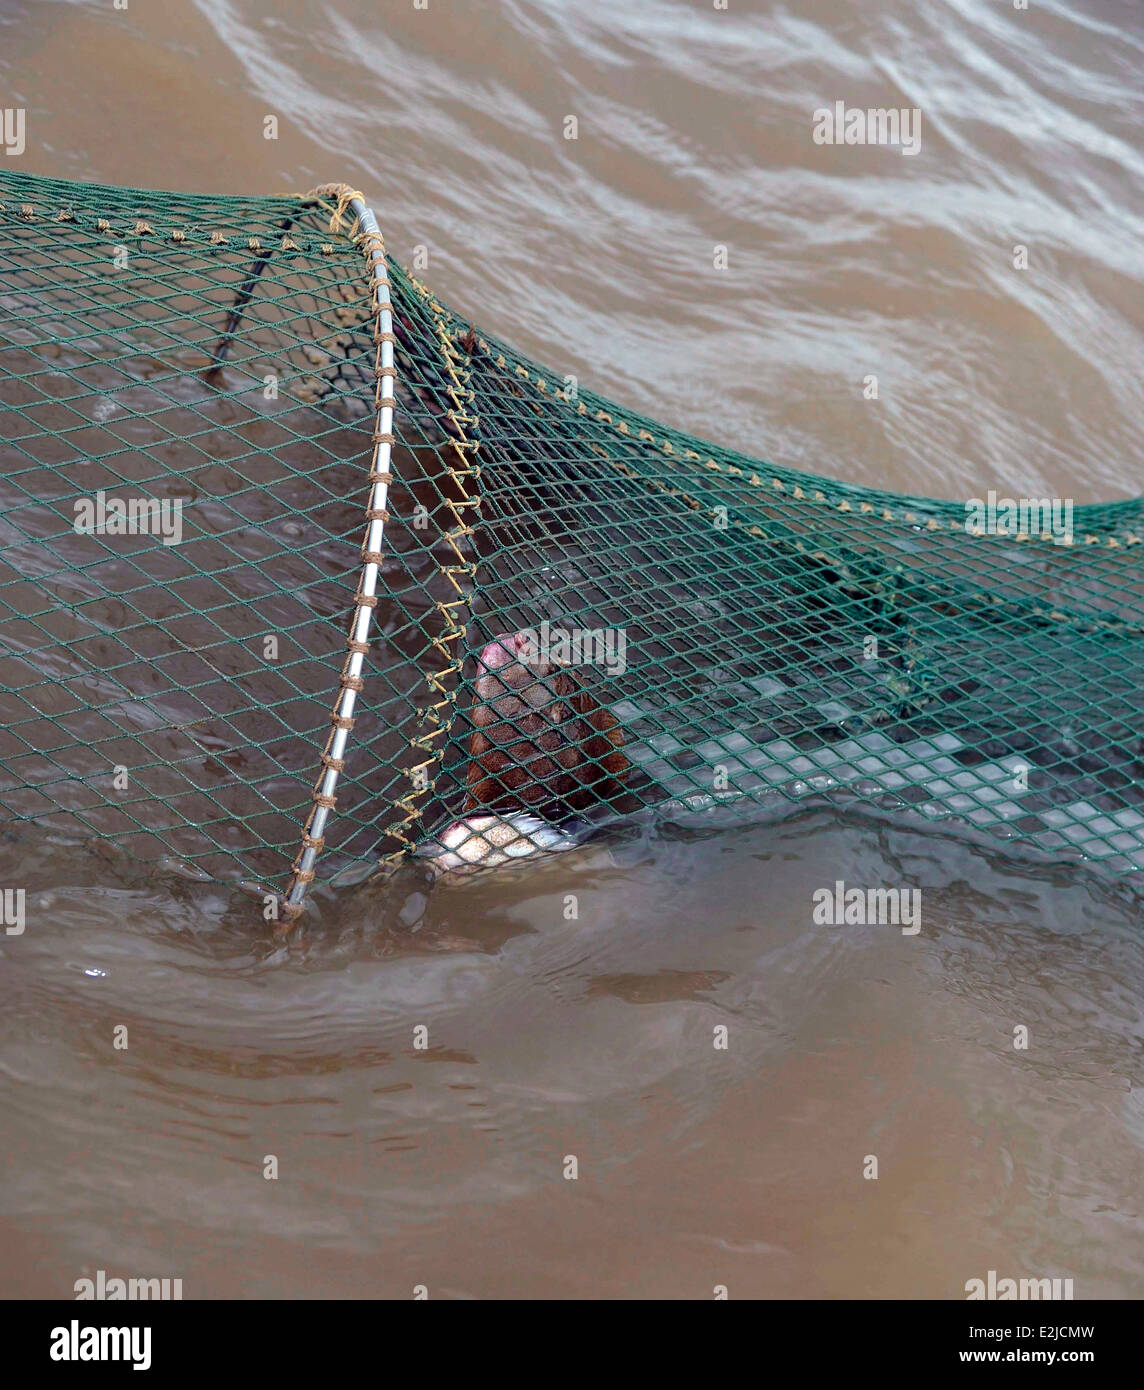 FYKE NETTING  FOR SOLES. NET SHOWING ABOVE WATER AND SOLES CAN BE SEEN IN NET. - Stock Image